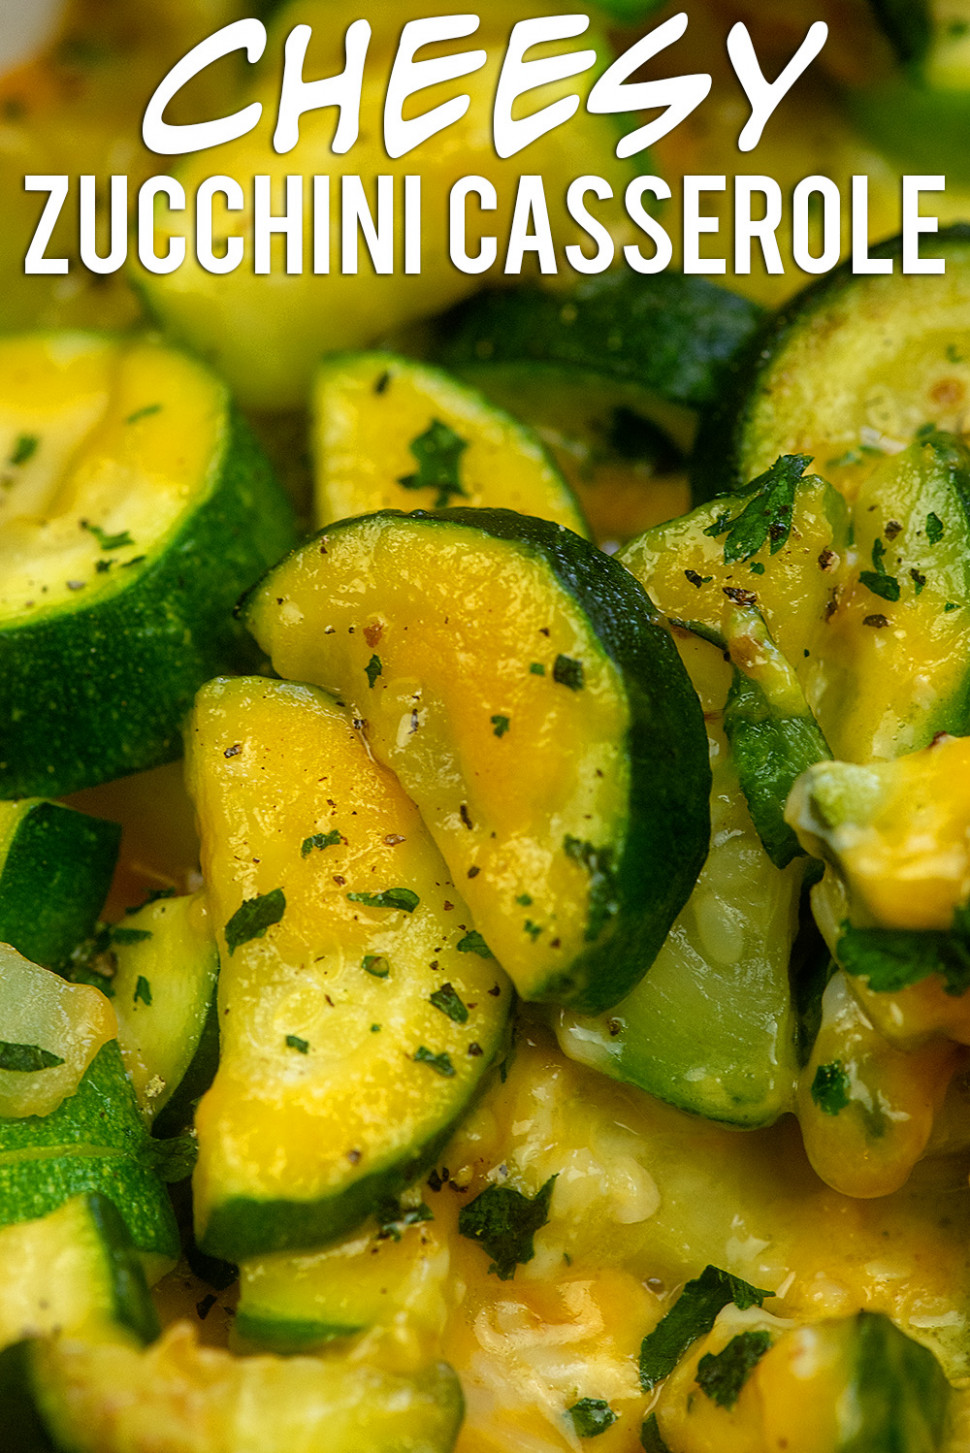 Cheesy Zucchini Casserole from ThatLowCarbLife